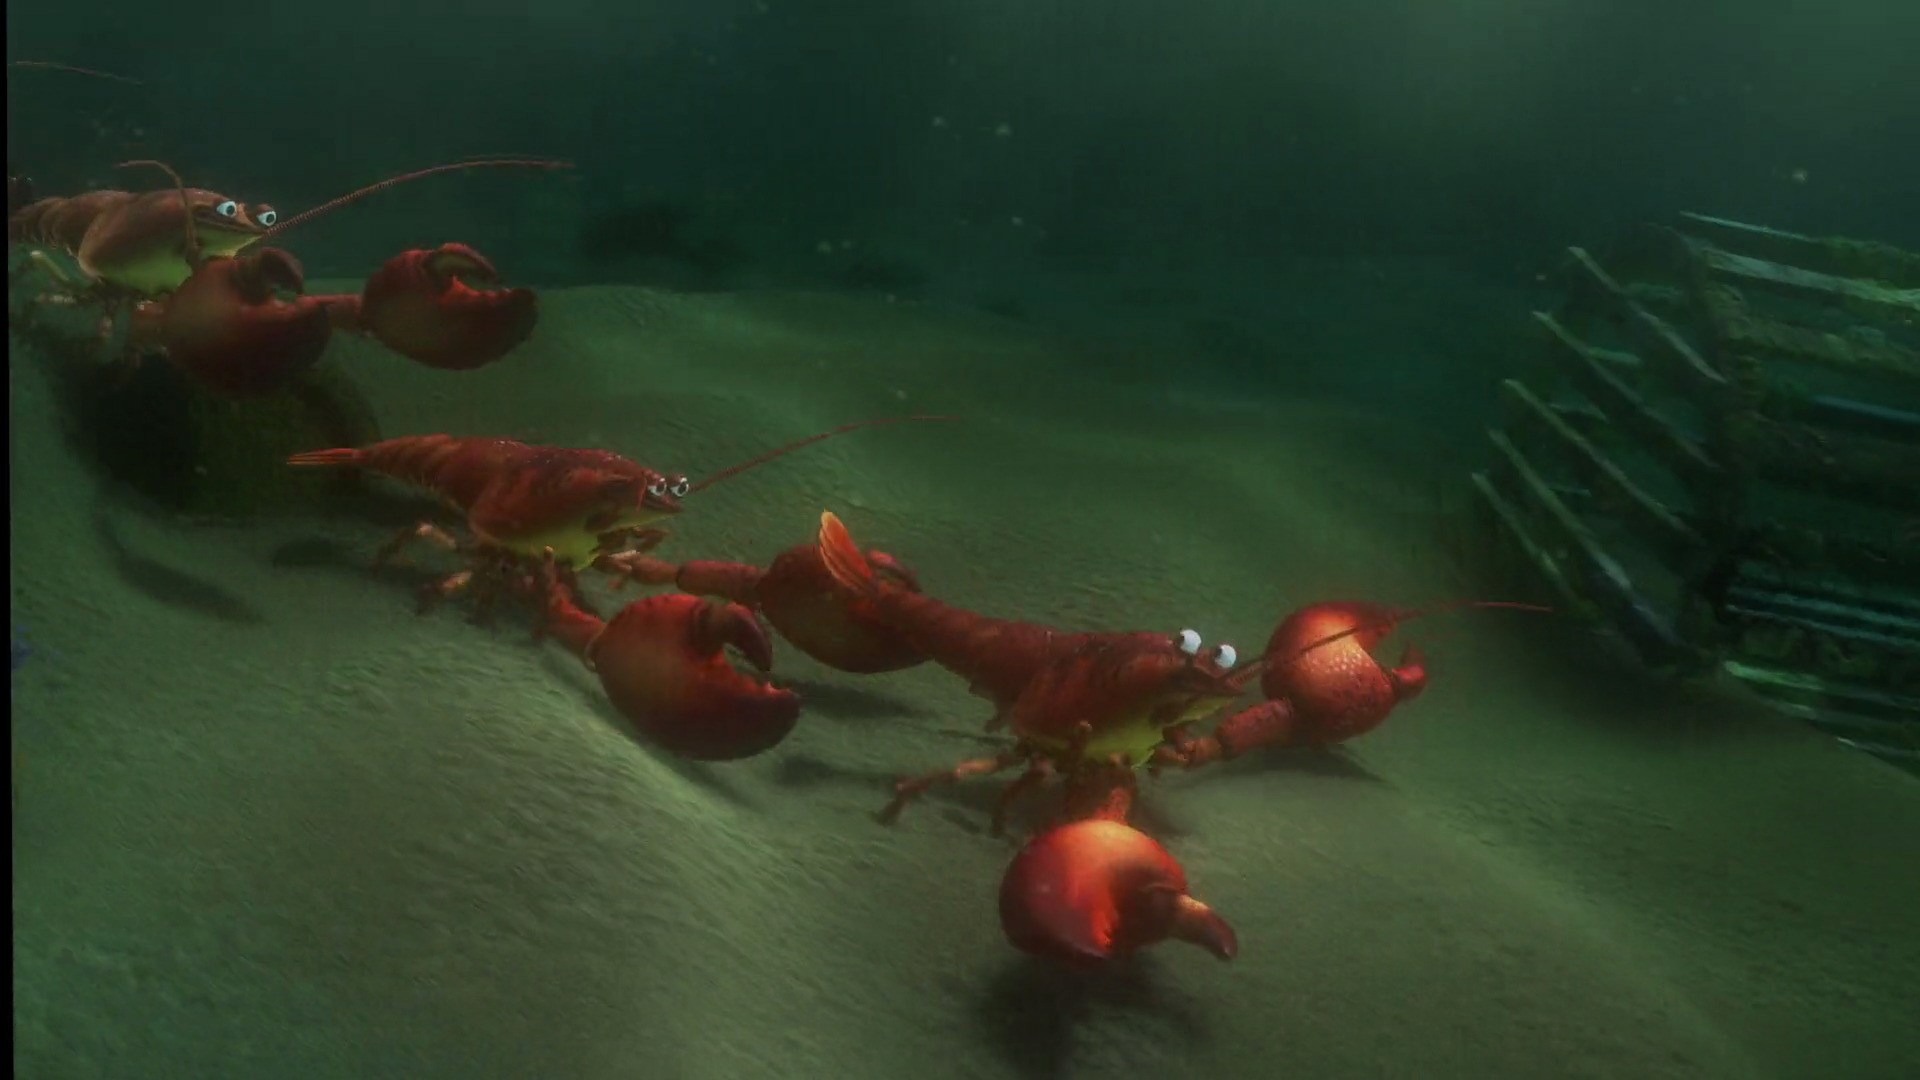 Lobsters (Finding Nemo)